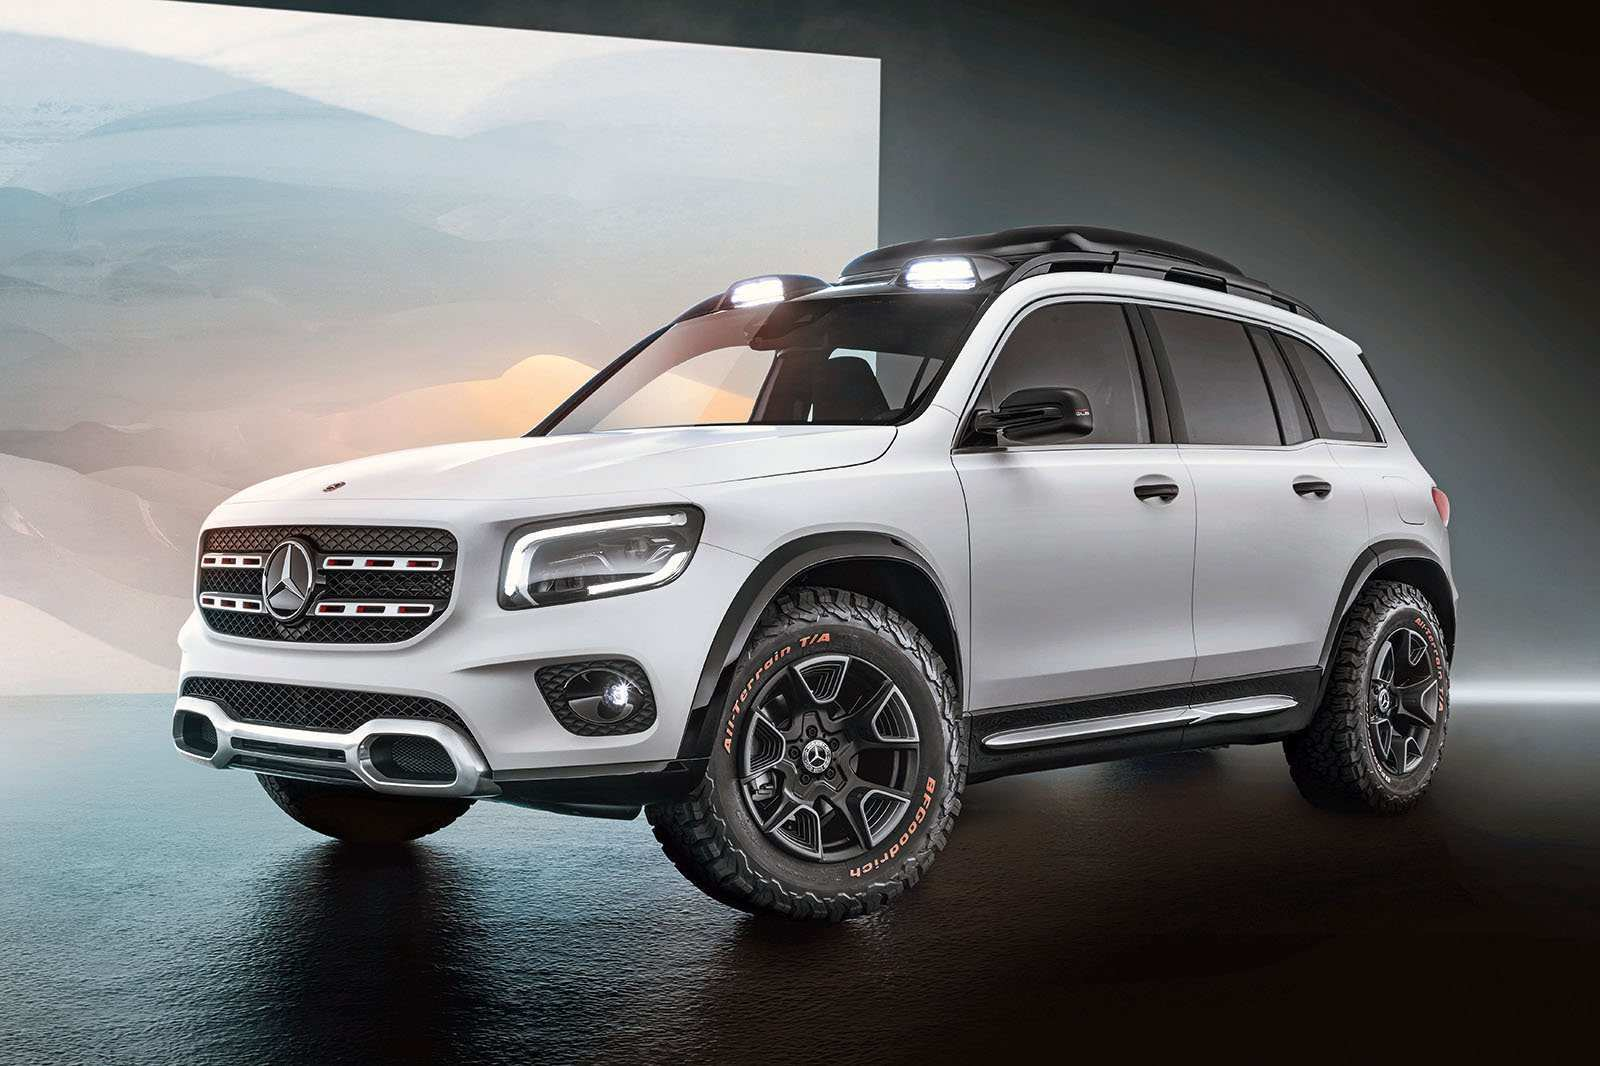 35 All New New Jeep Mercedes 2019 Release Specs And Review Images by New Jeep Mercedes 2019 Release Specs And Review